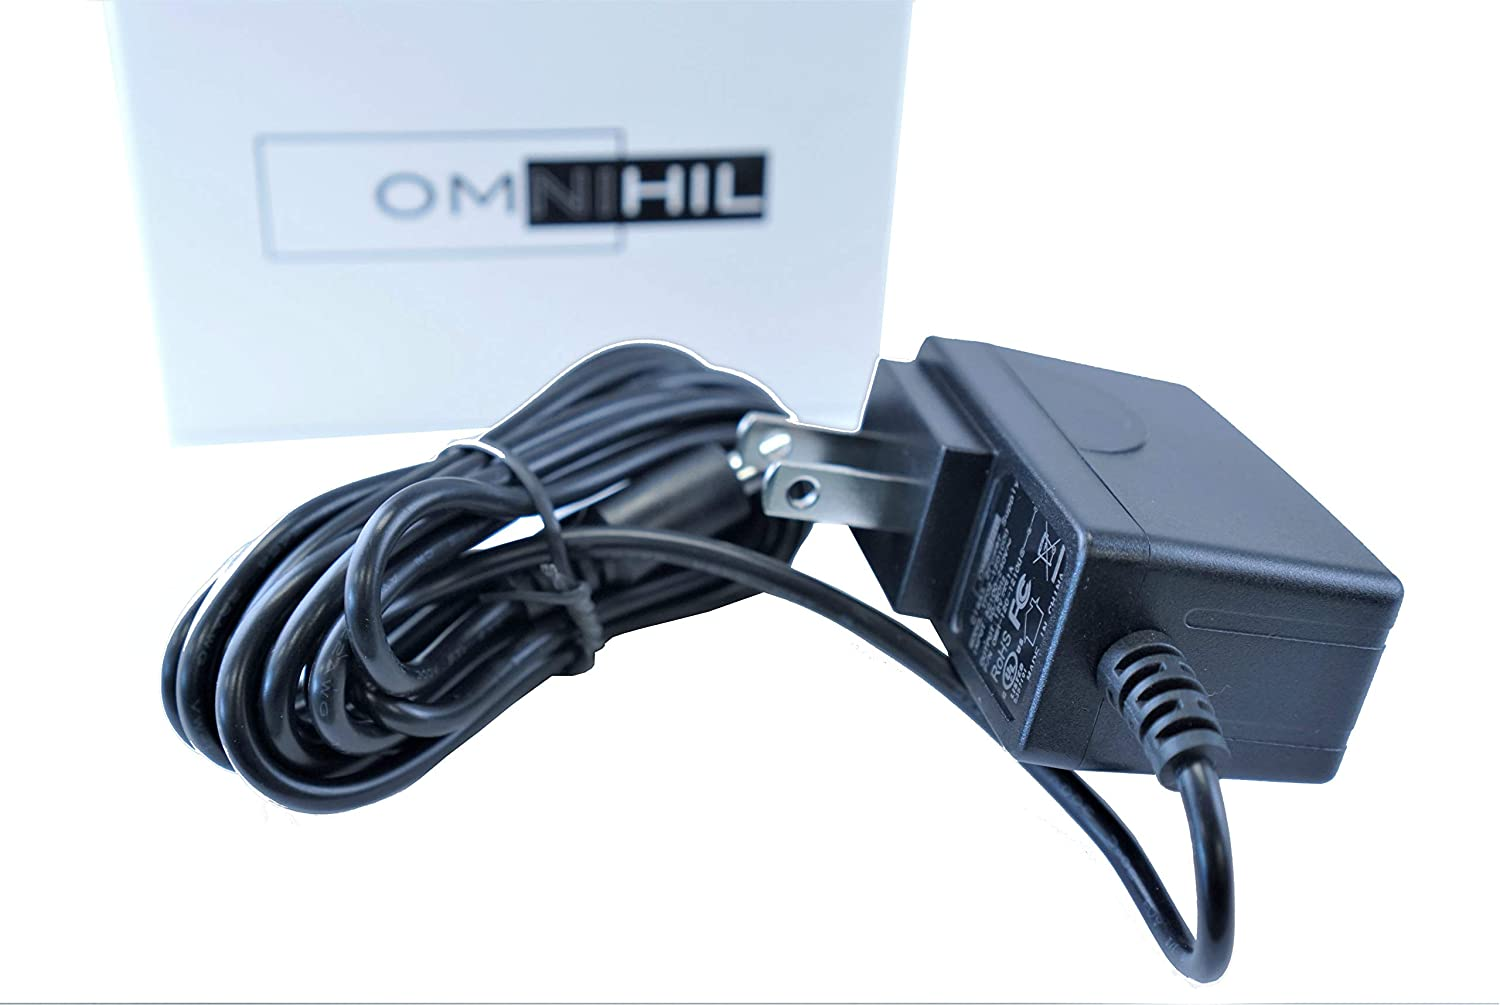 [UL Listed] OMNIHIL 8 Feet Long AC/DC Adapter Compatible with 3 Volt 2 Amp Power Adapter, AC to DC, 6.5mm X 4.4mm with Center pin, 3v 2a Power Supply Wall Plug